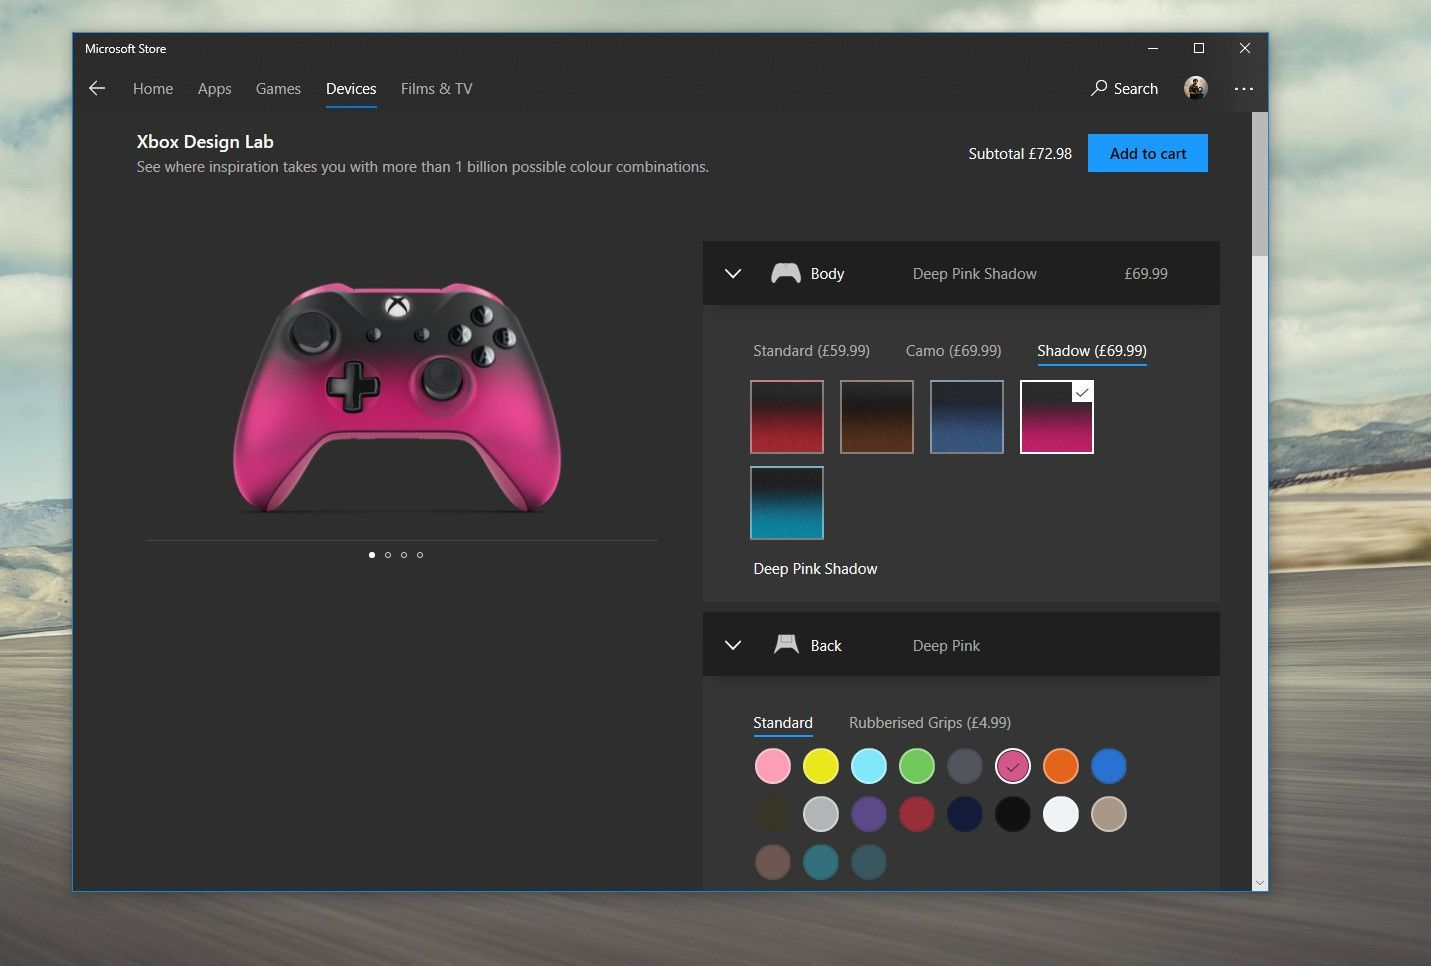 Xbox Design Lab comes to Microsoft Store app on Xbox One